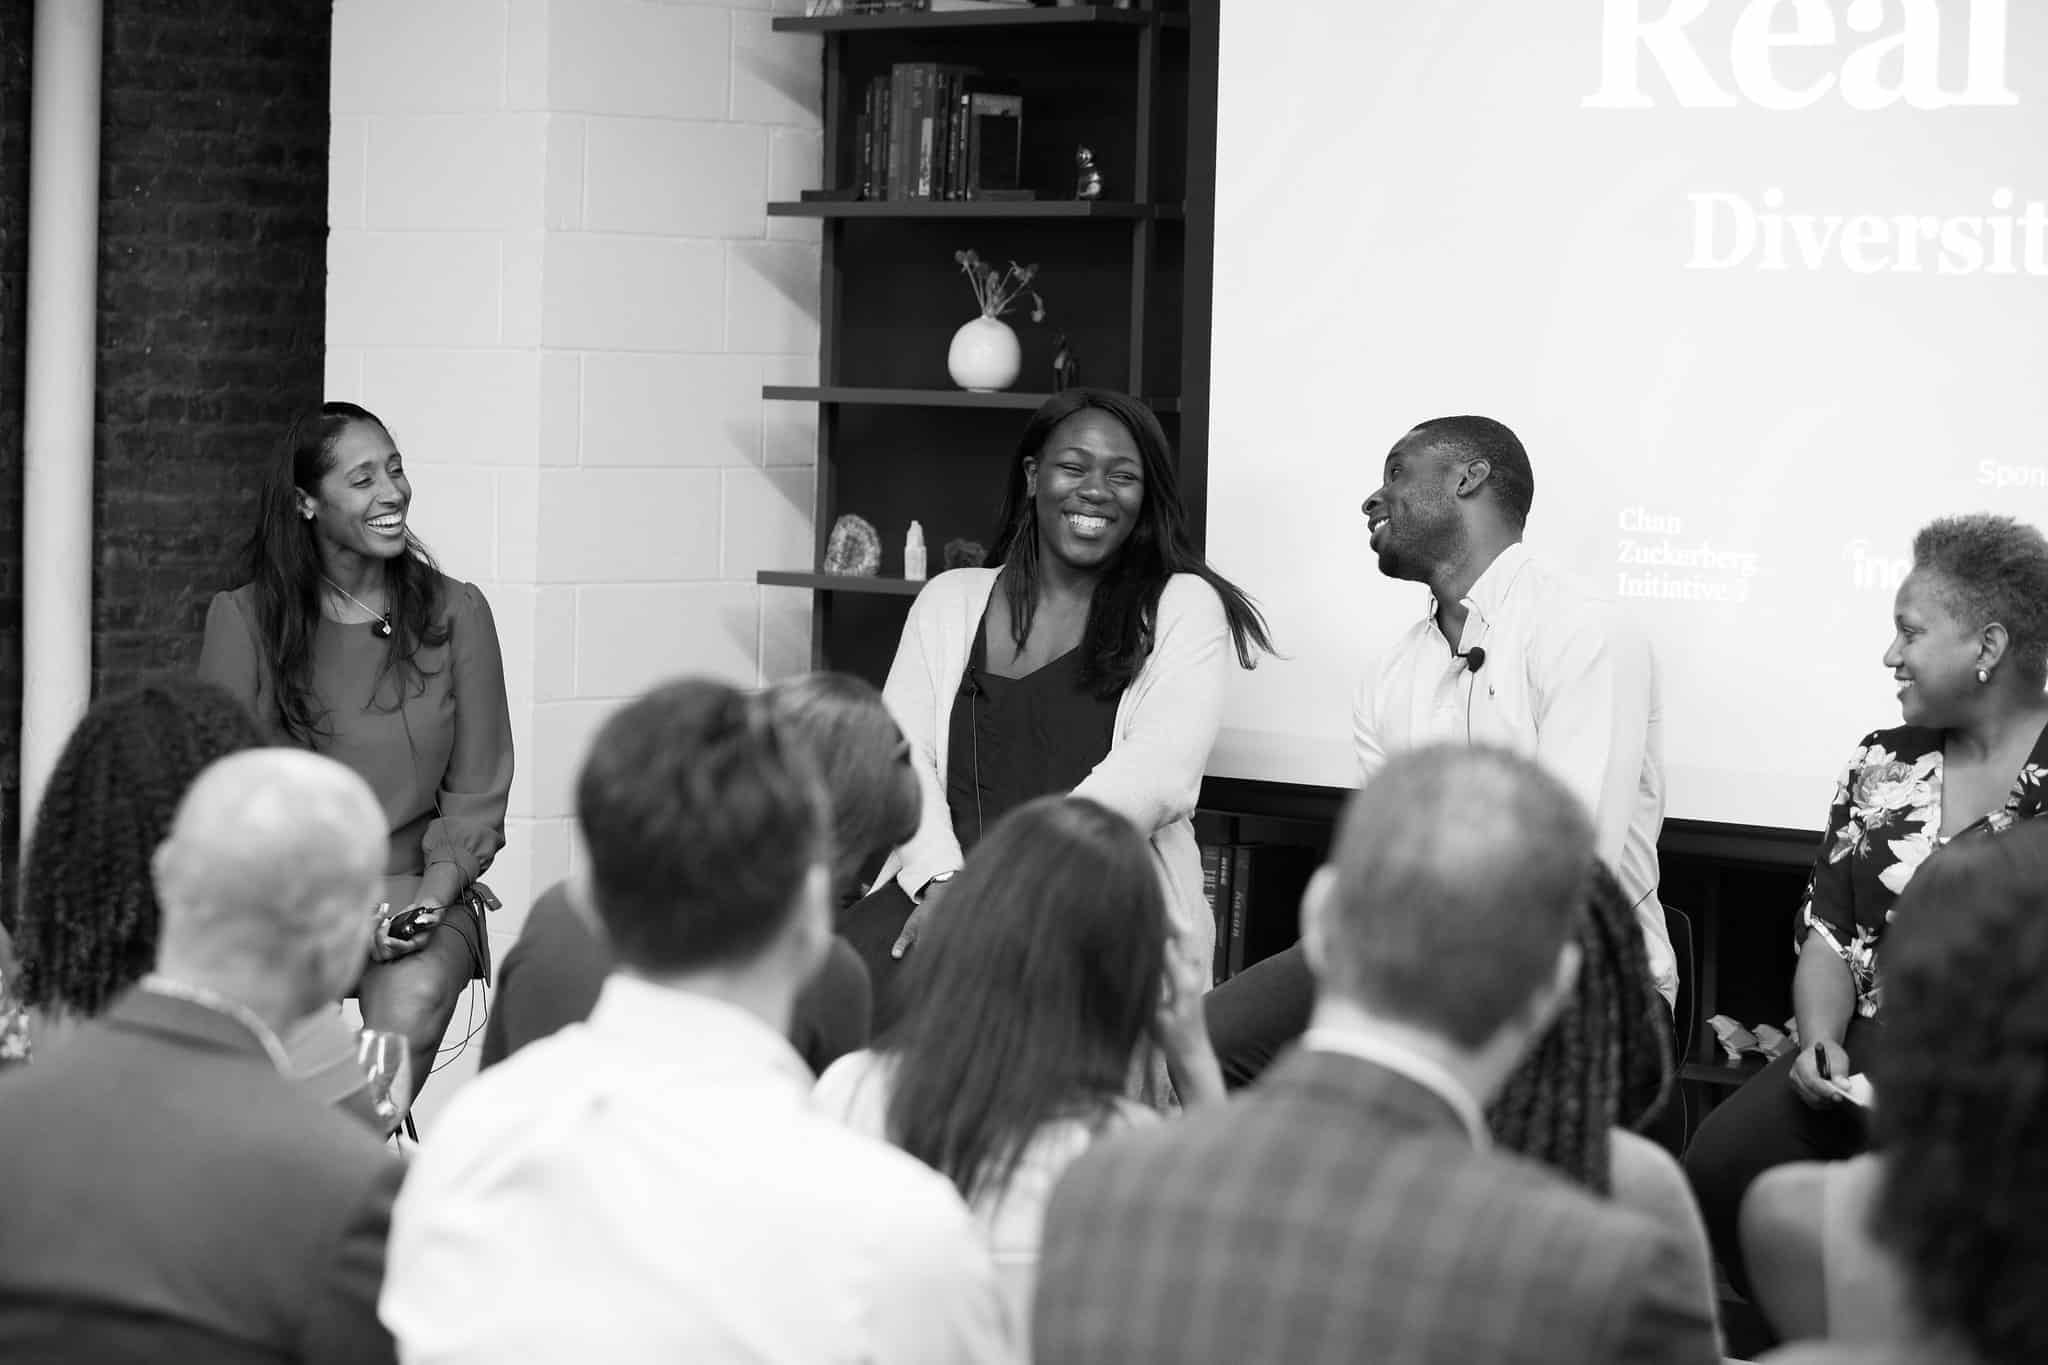 """Real Talk: Diversity in Tech"" Highlights the Need To Go Beyond Diversity and Inclusion Programs in Tech"